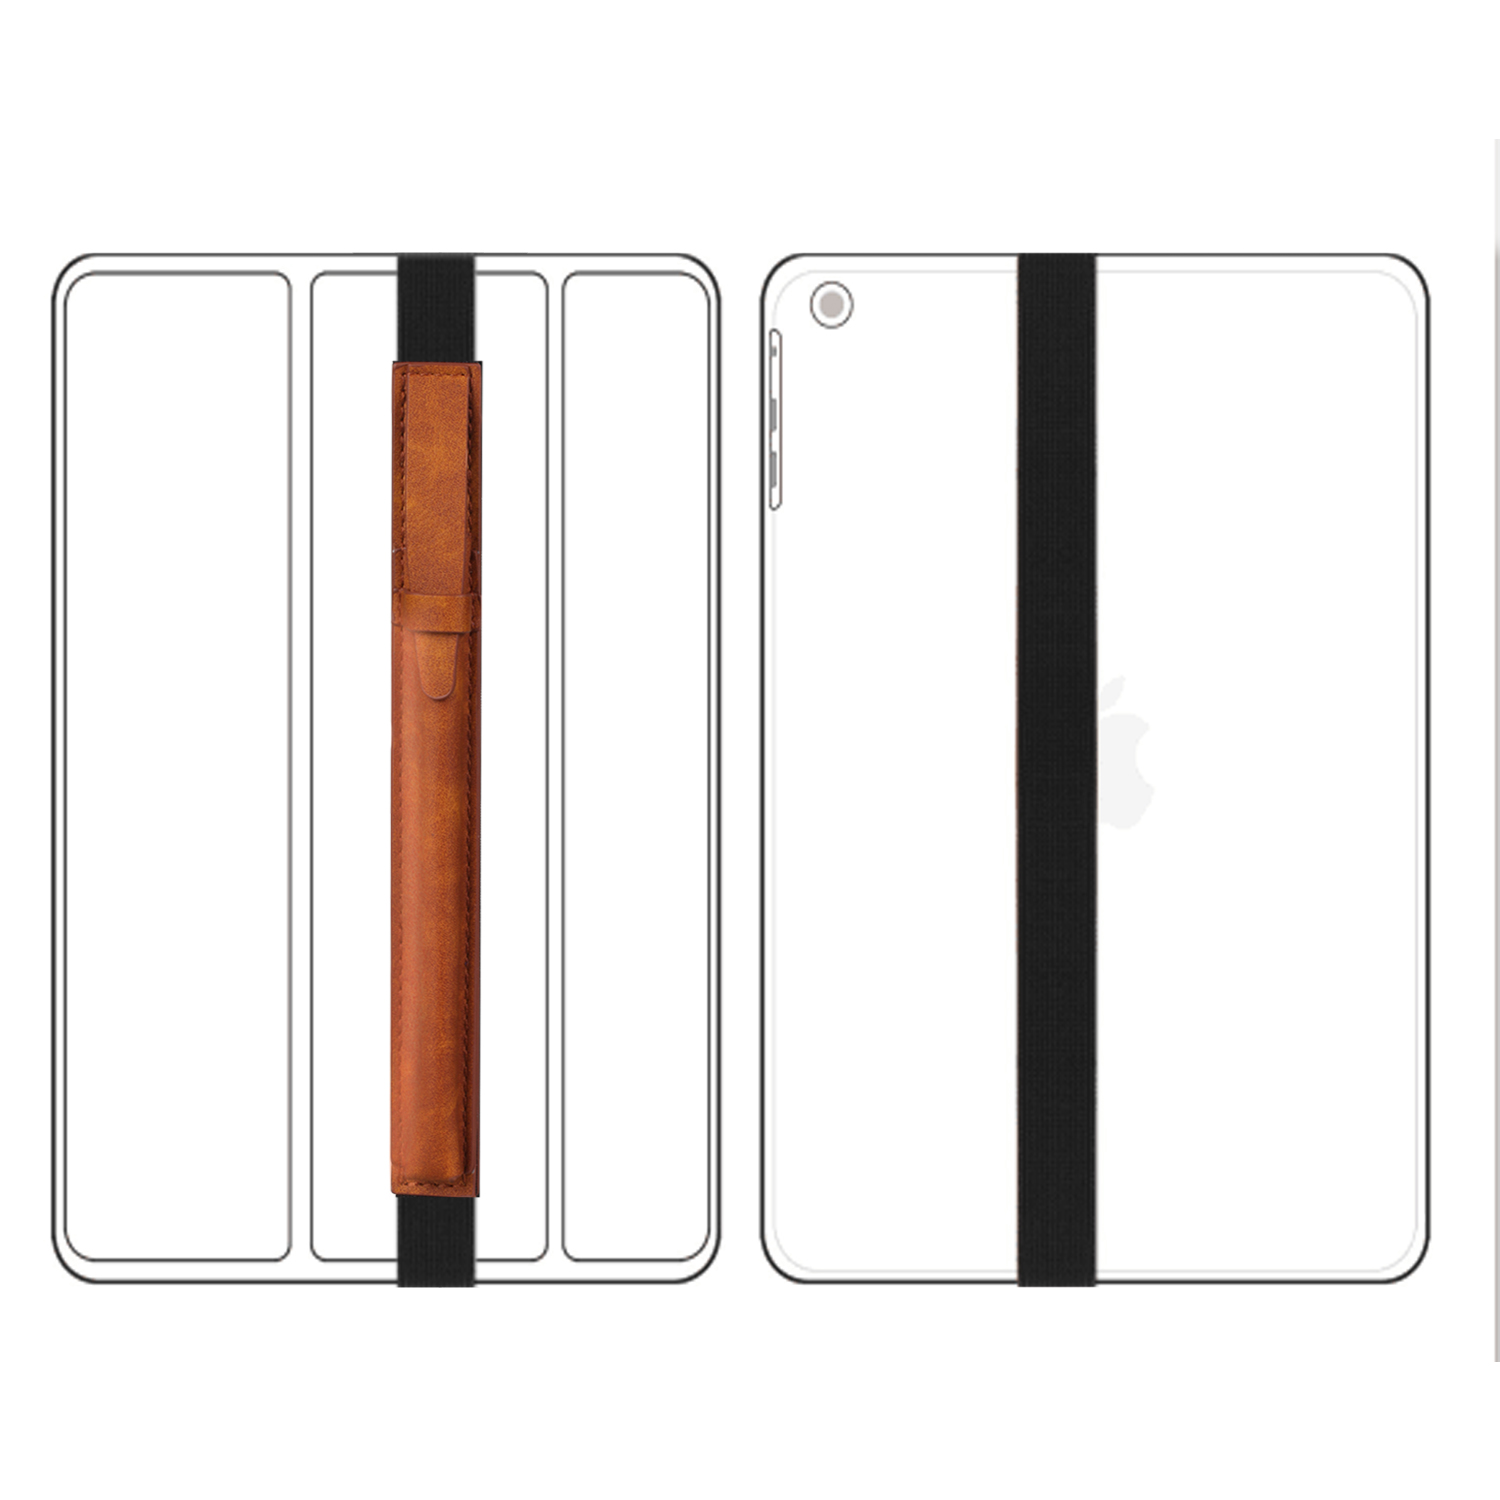 For-Apple-Pencil-Case-Leather-iPad-Pen-Cover-Sleeve-Pouch-Bag-Holder-Protector thumbnail 13